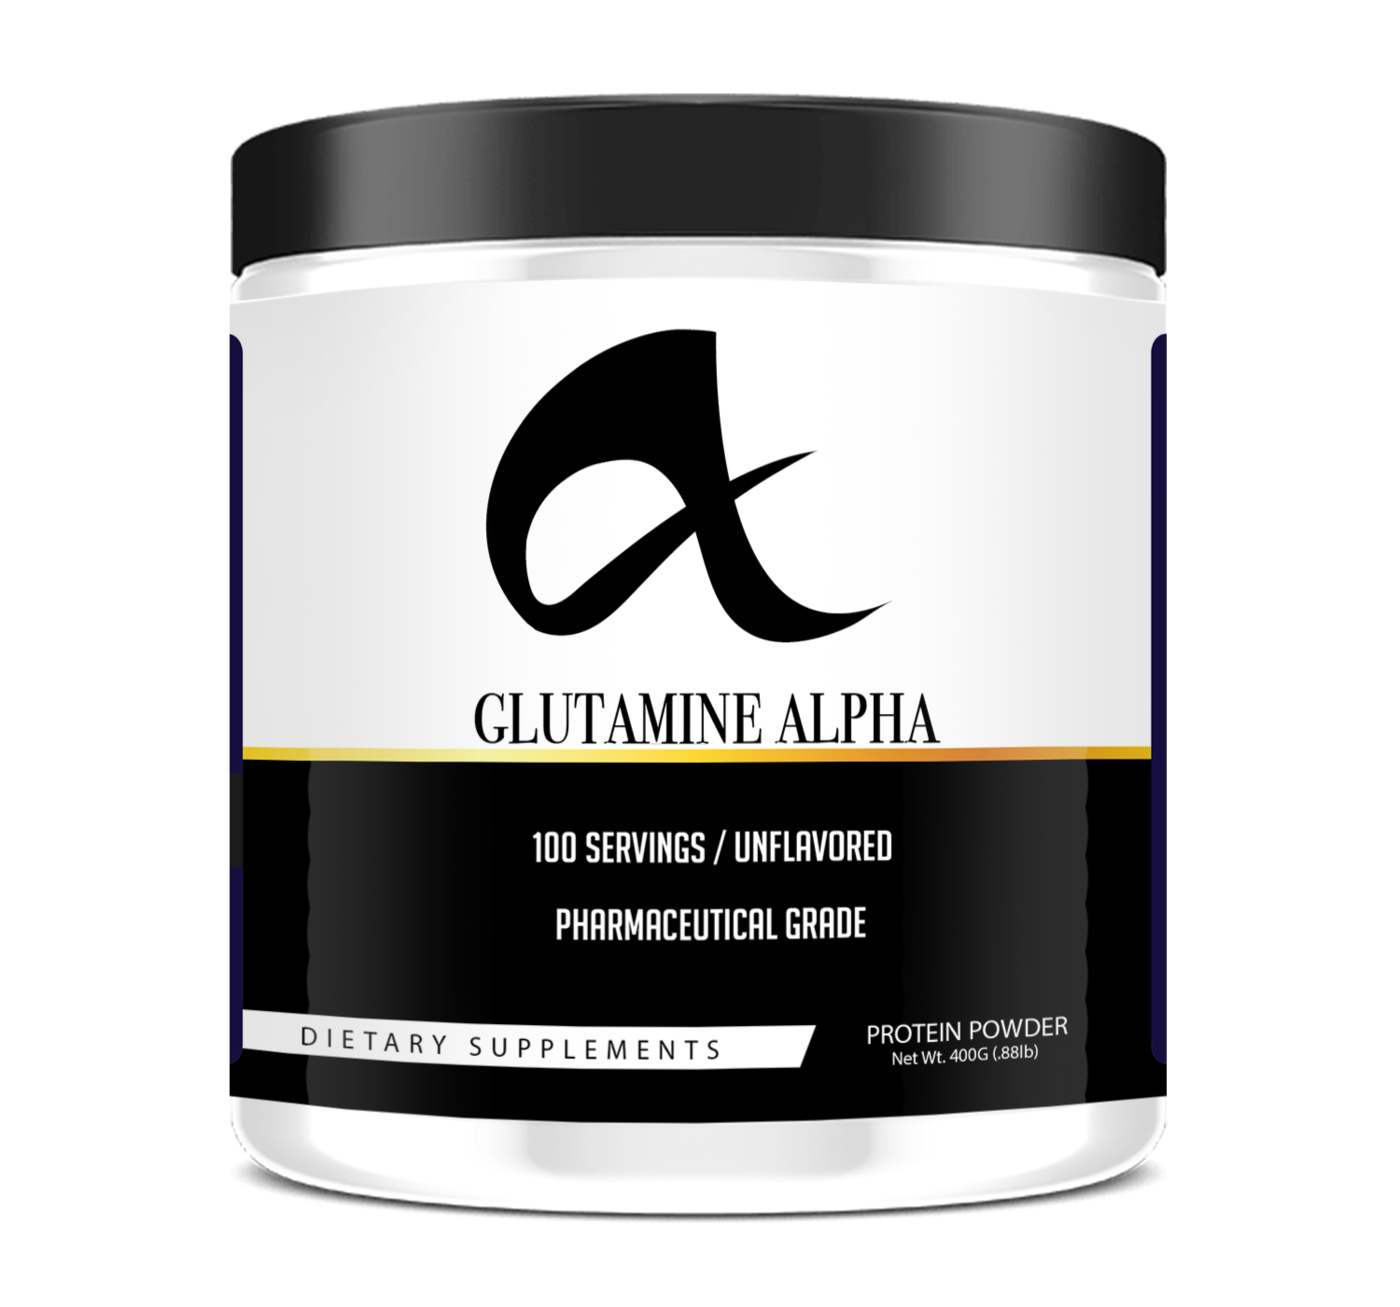 Glutamine: Benefits and major uses